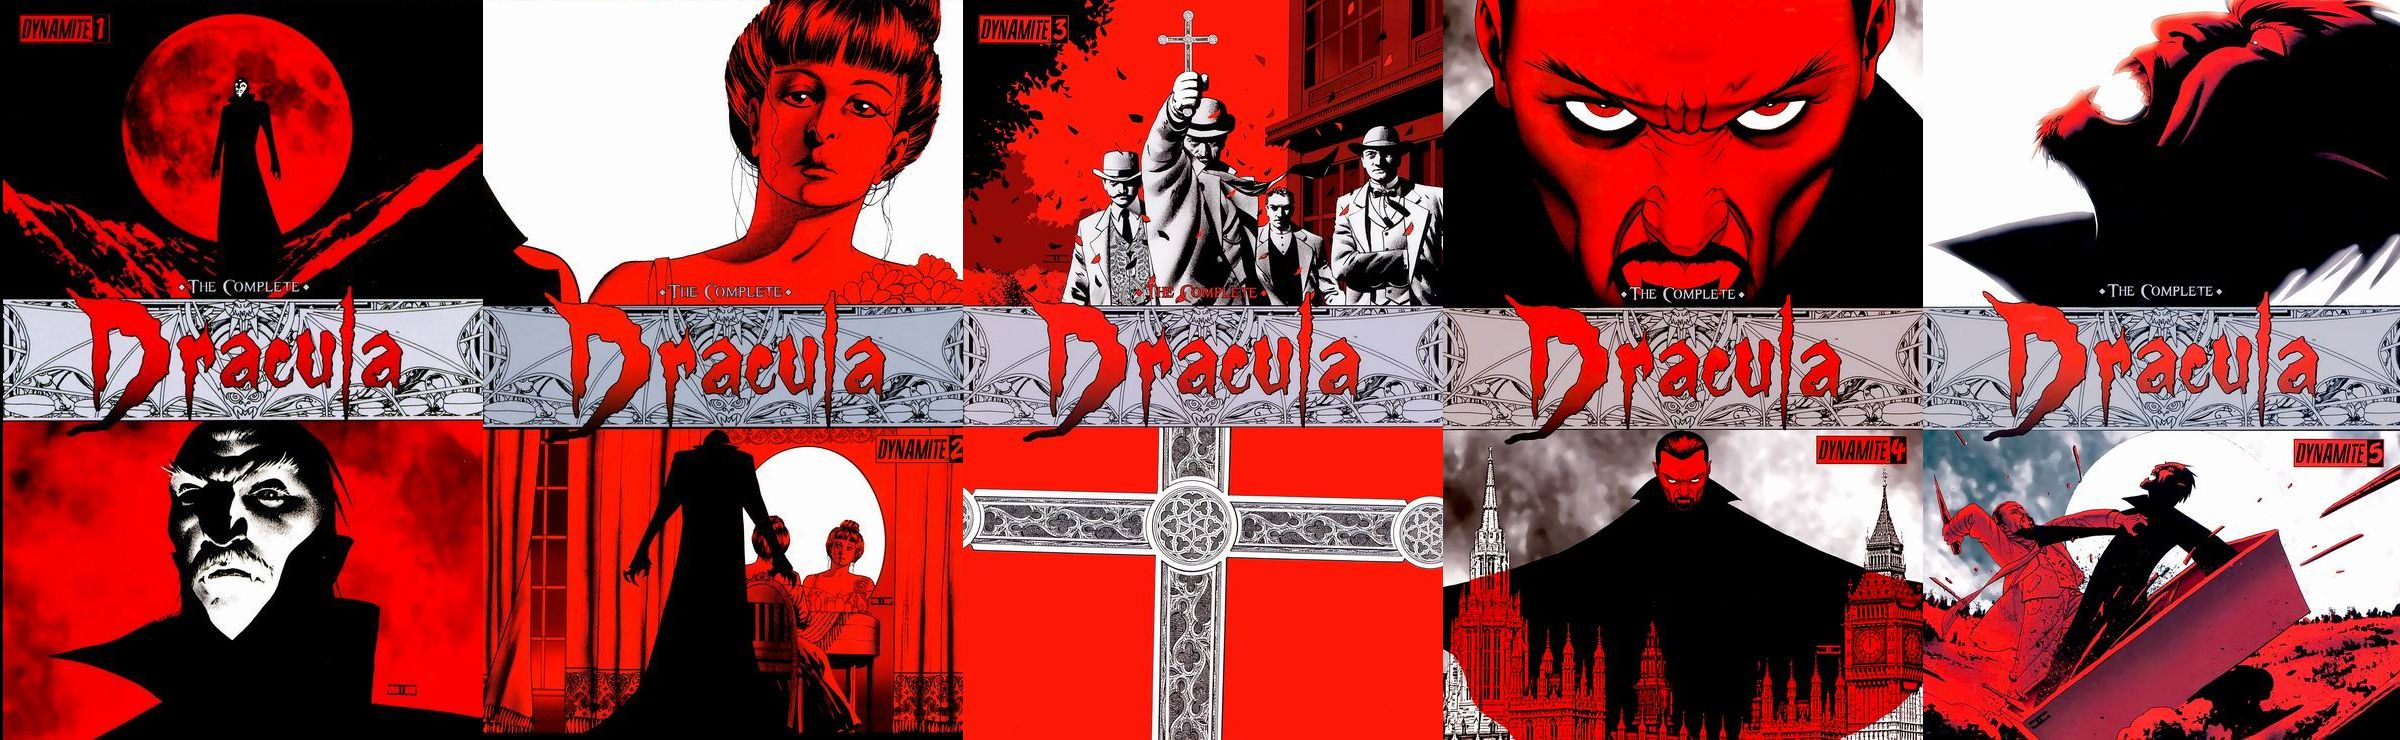 The Complete Dracula #1-5 (Of 5)